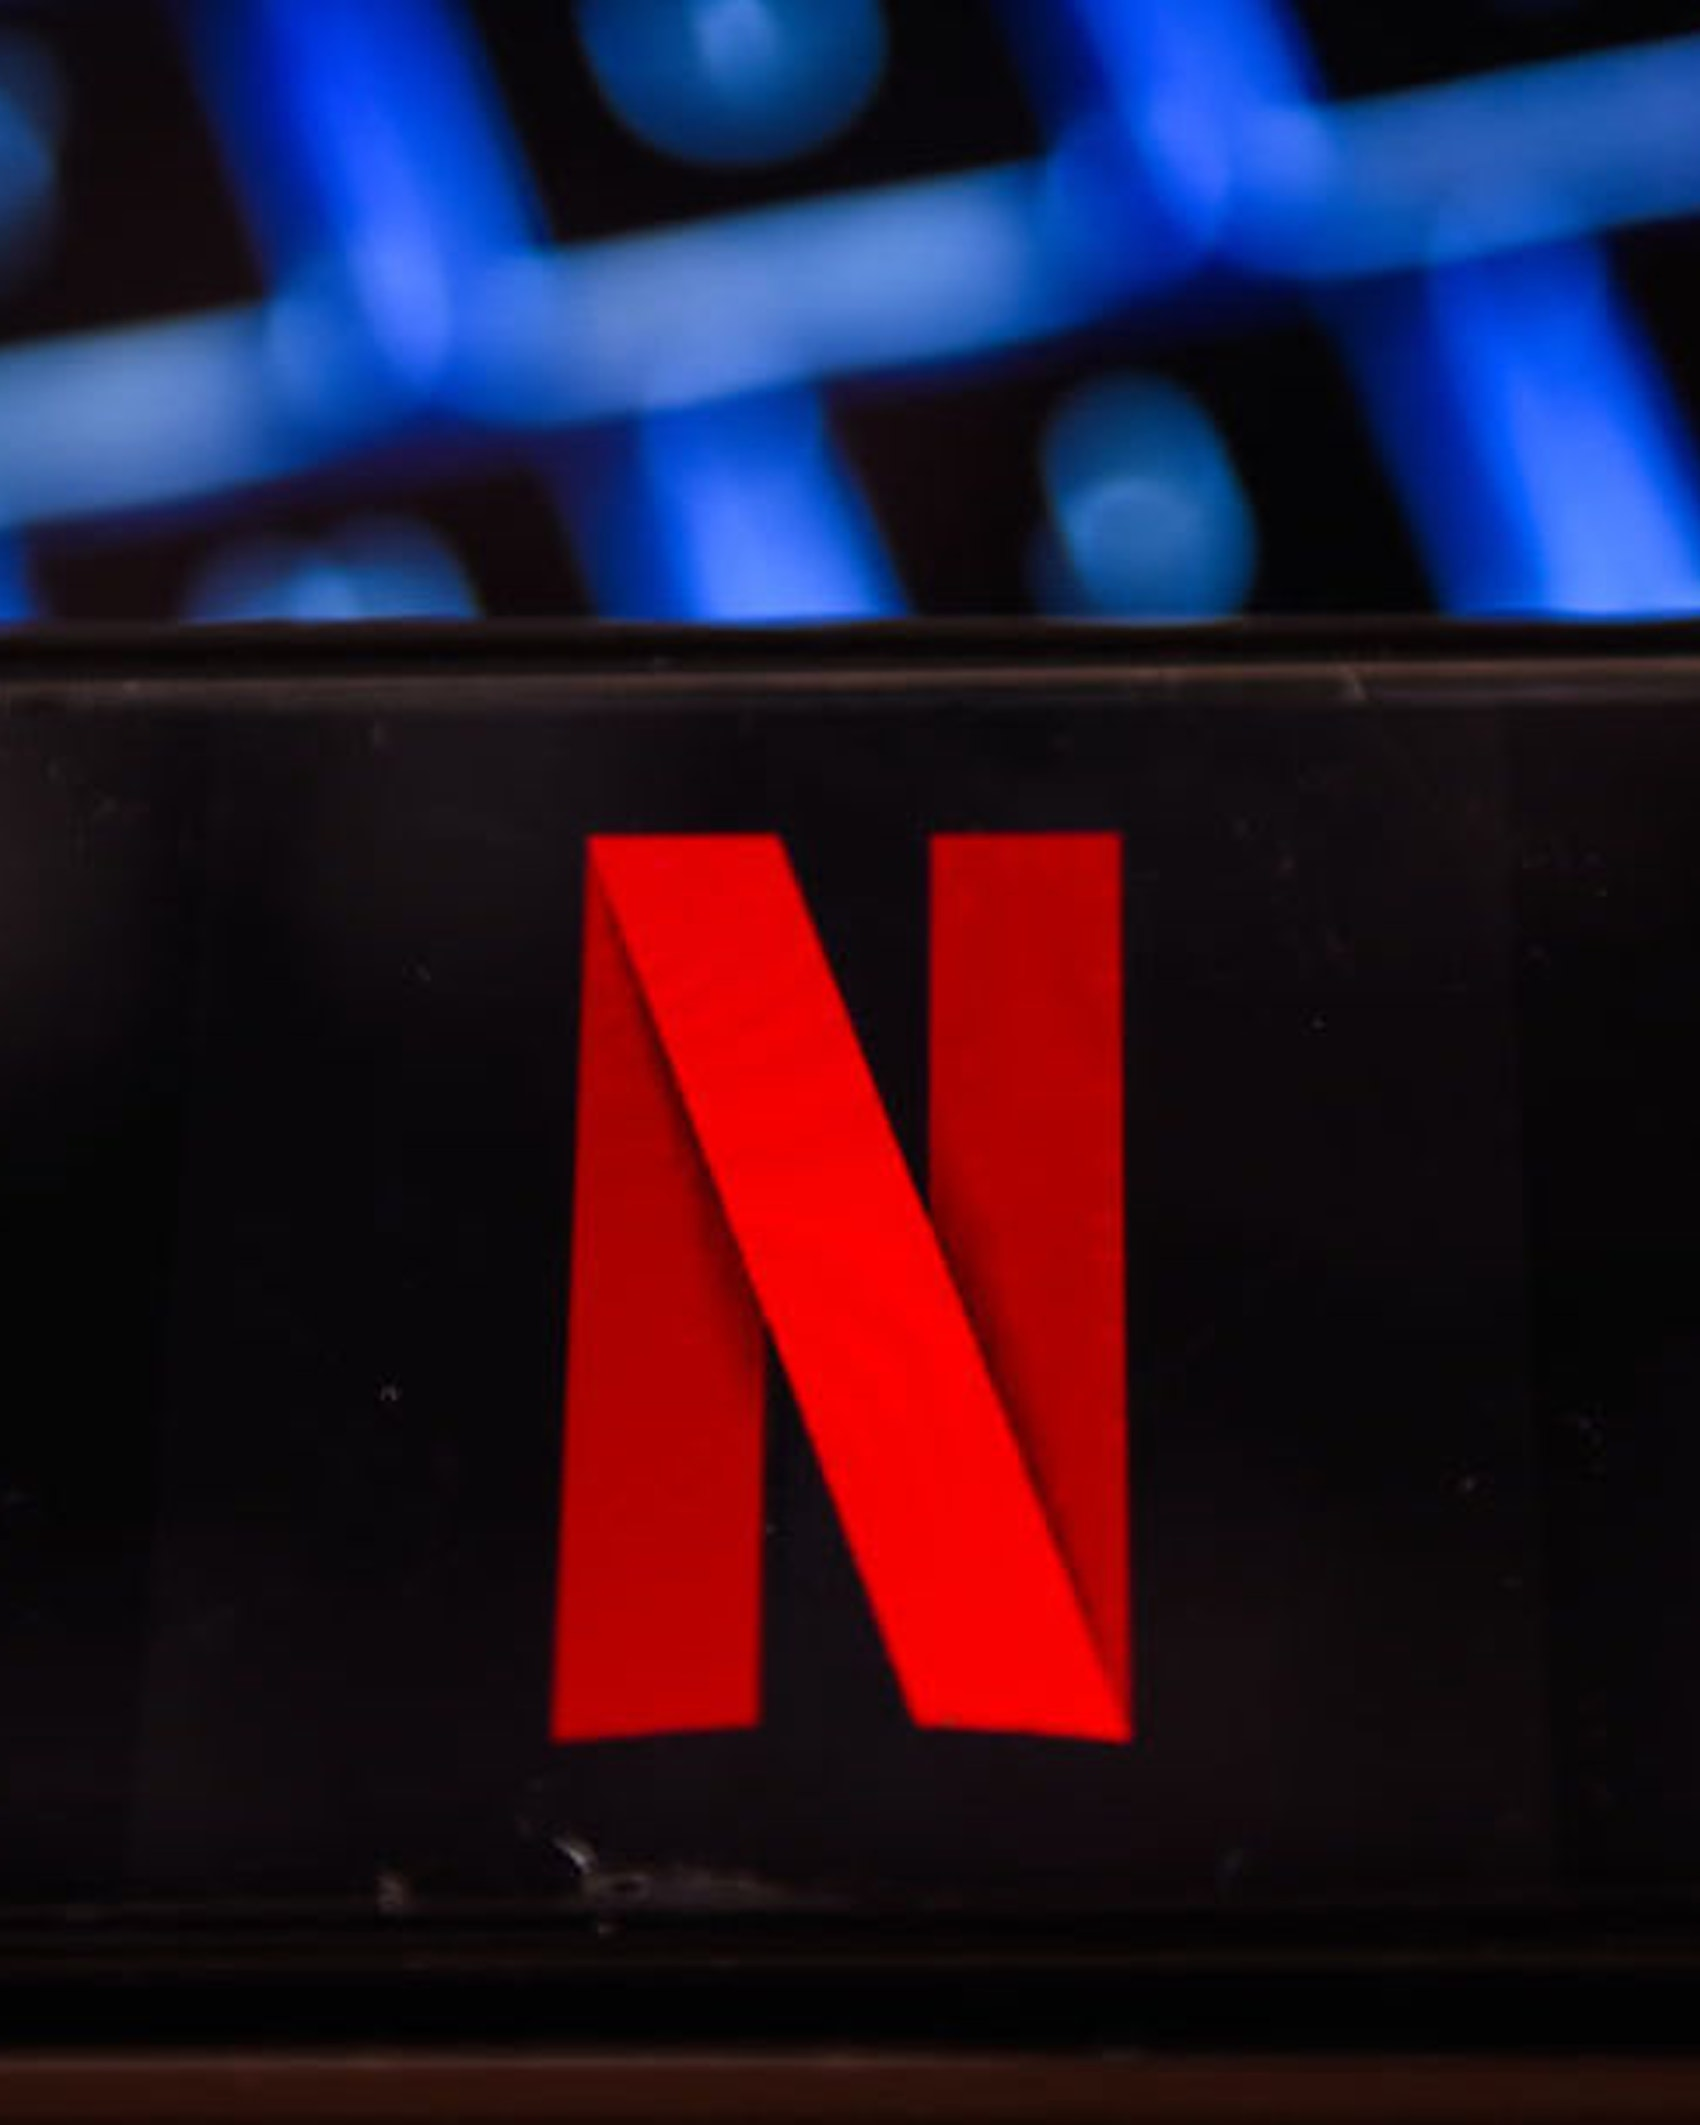 In this photo illustration, a Netflix logo is displayed on a smartphone. (Photo Illustration by Omar Marques/SOPA Images/LightRocket via Getty Images)